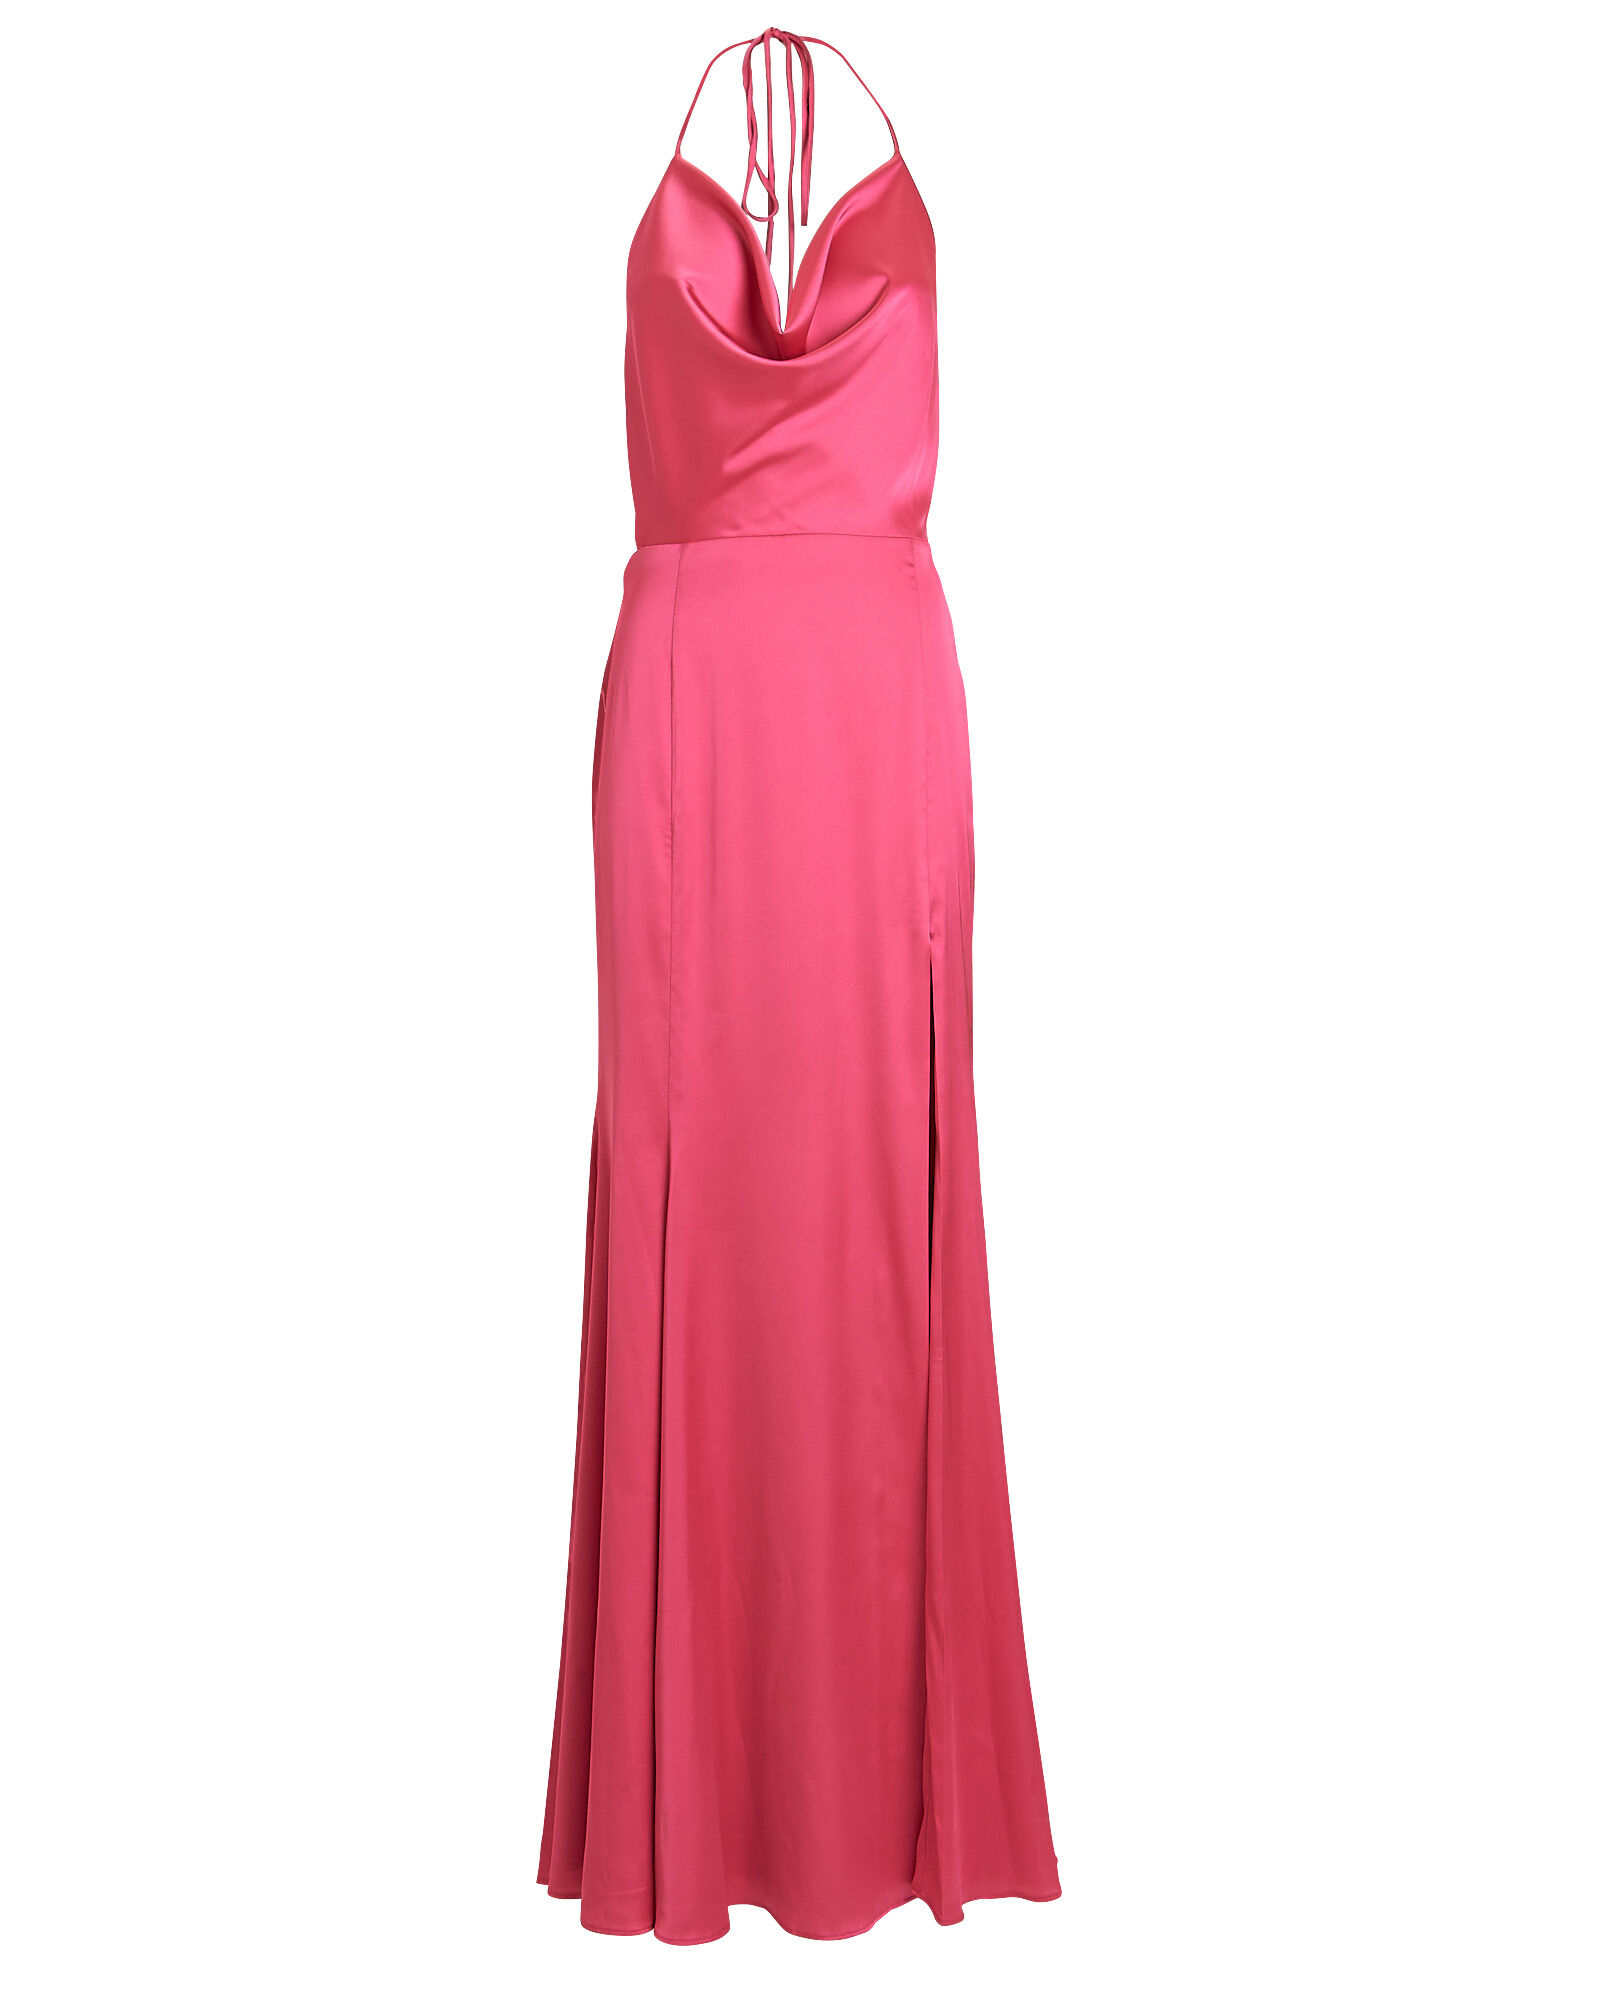 Fortitude Cowl Neck Gown, PINK, hi-res